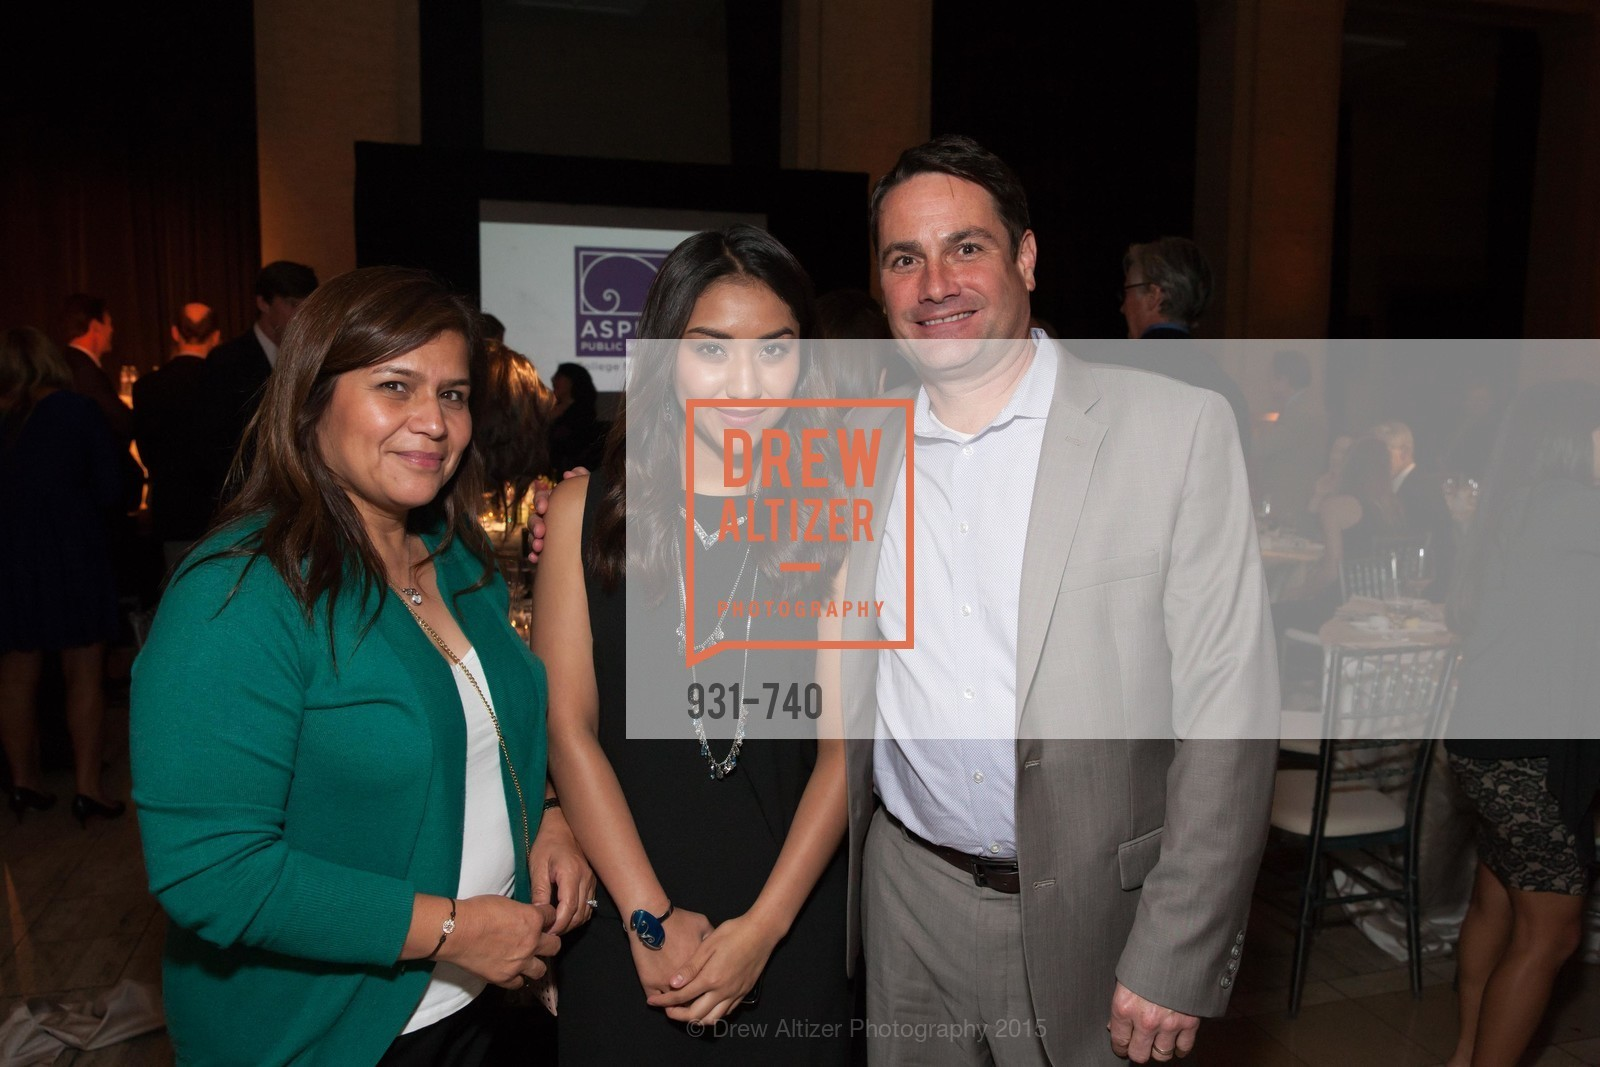 Laura Garcia, James Willcox, Aspire Annual College for Certain Dinne, US, May 21st, 2015,Drew Altizer, Drew Altizer Photography, full-service agency, private events, San Francisco photographer, photographer california